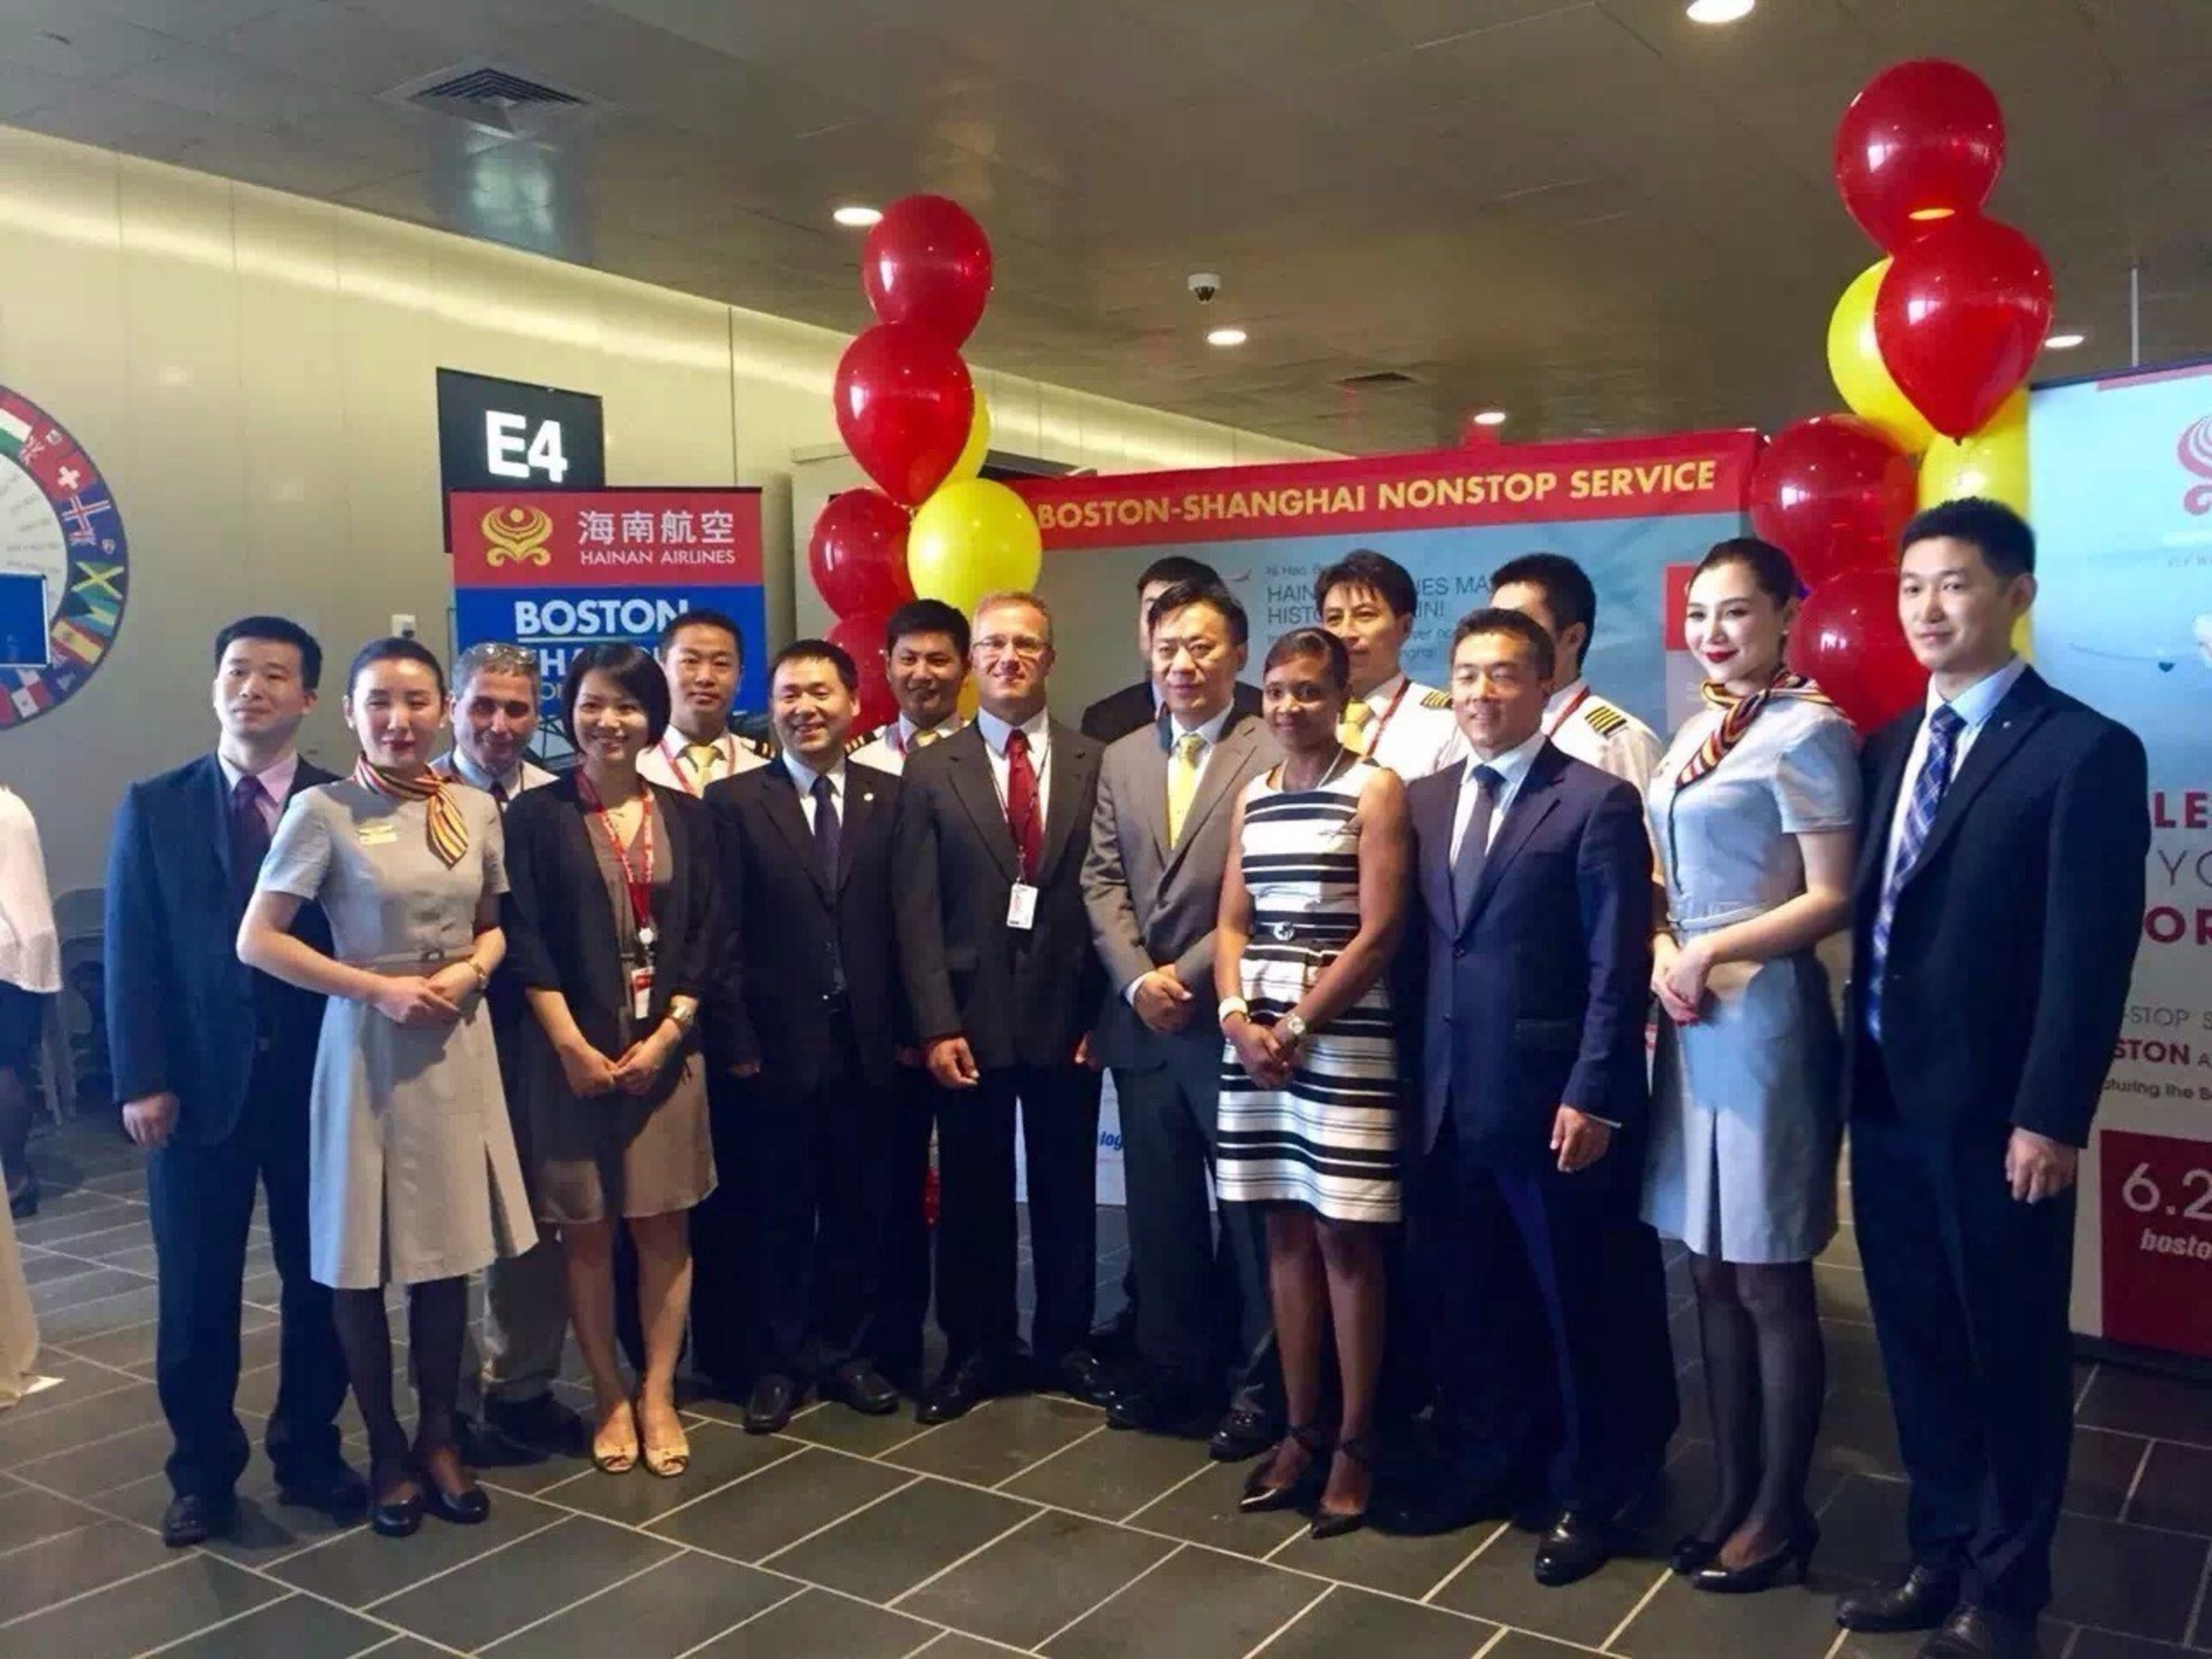 Hainan Airlines Opens Roundtrip Route between Shanghai and Boston